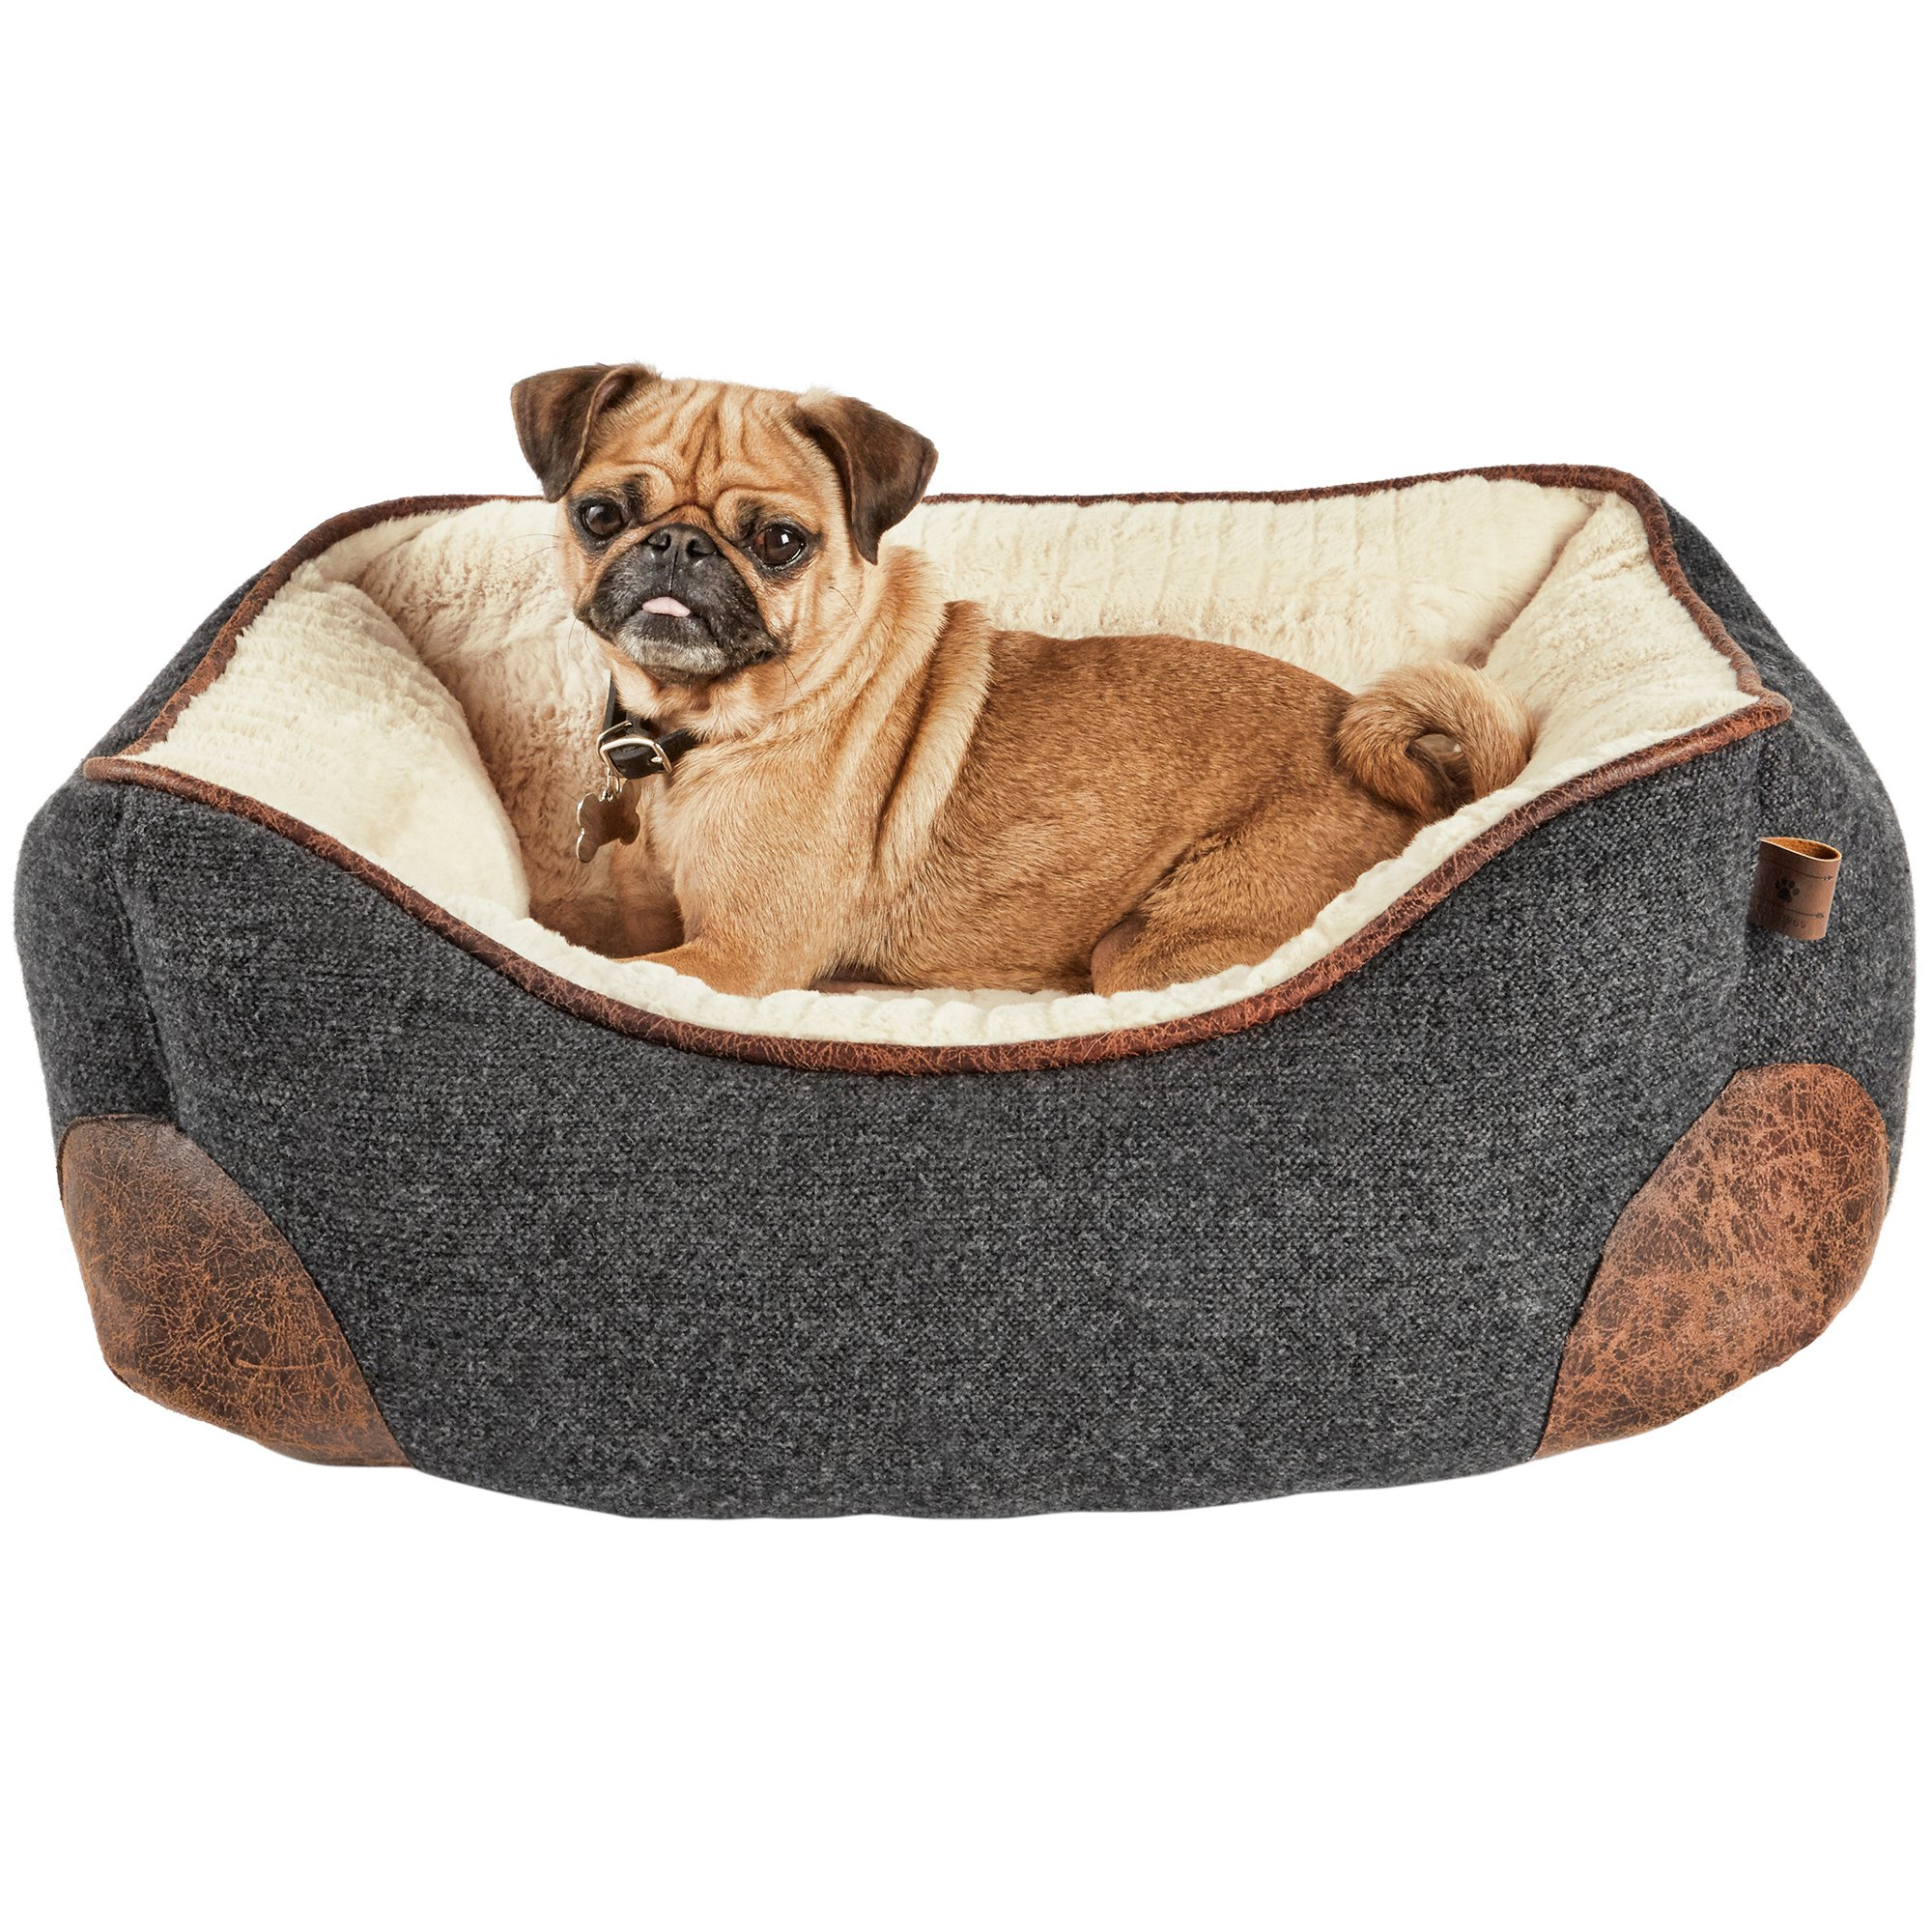 Dog Beds Best Large Small Dog Beds On Sale Petco